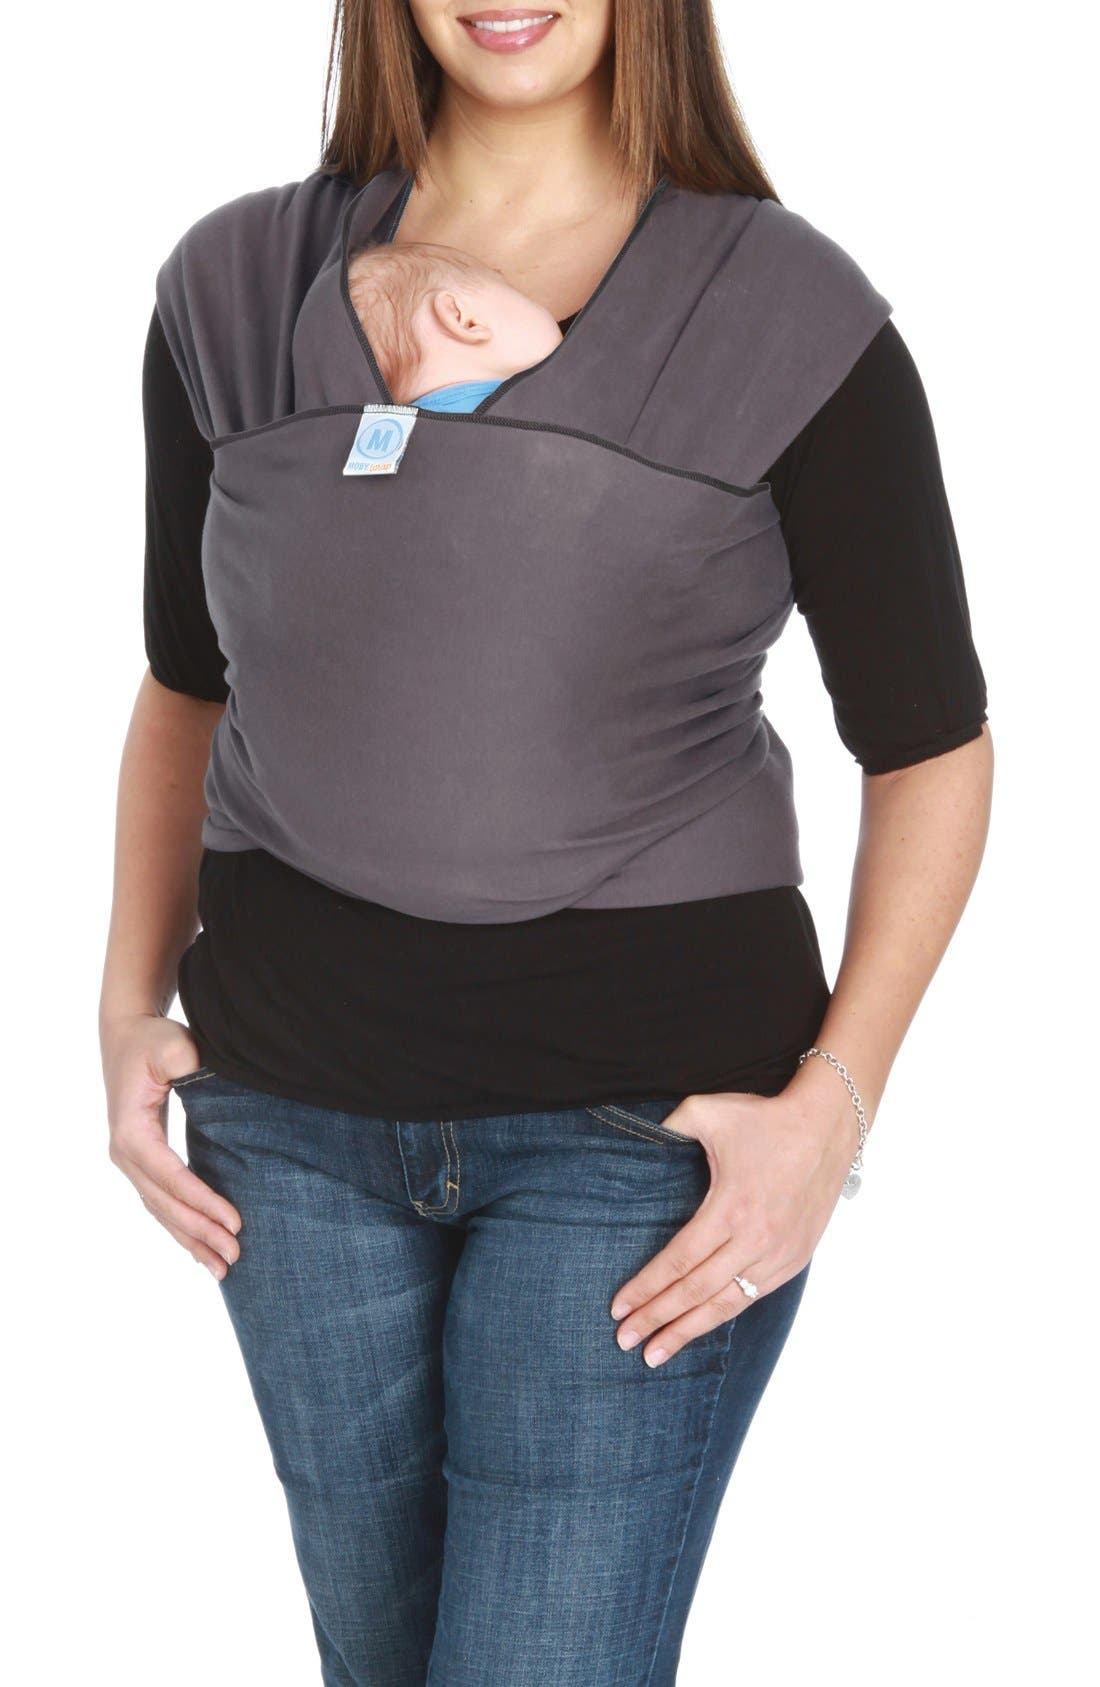 Moby Wrap 'Moderns' Baby Carrier